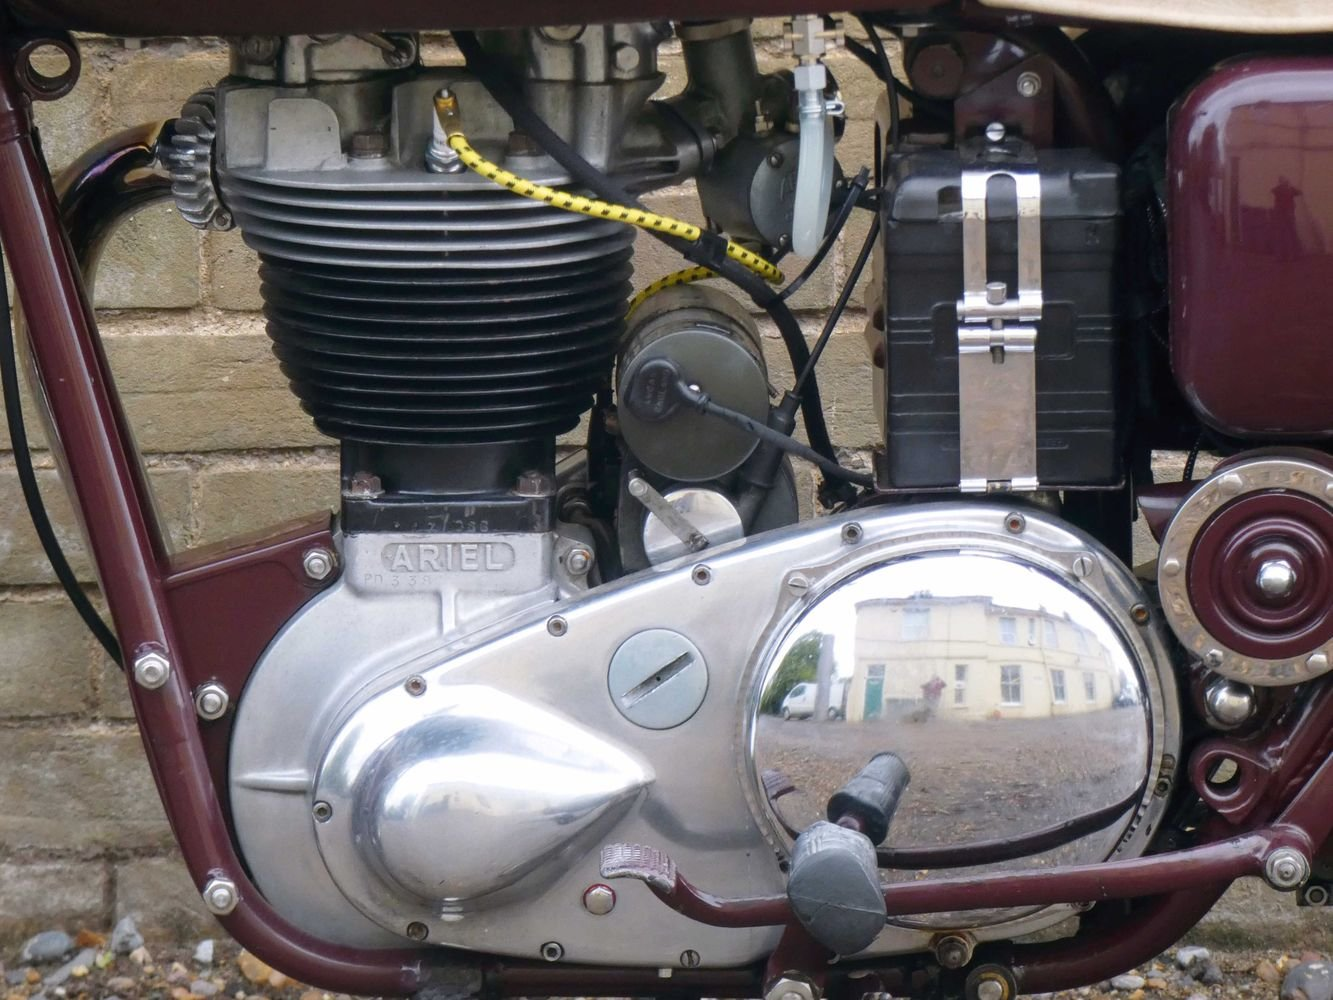 1954 Ariel VH 500cc For Sale (picture 4 of 6)